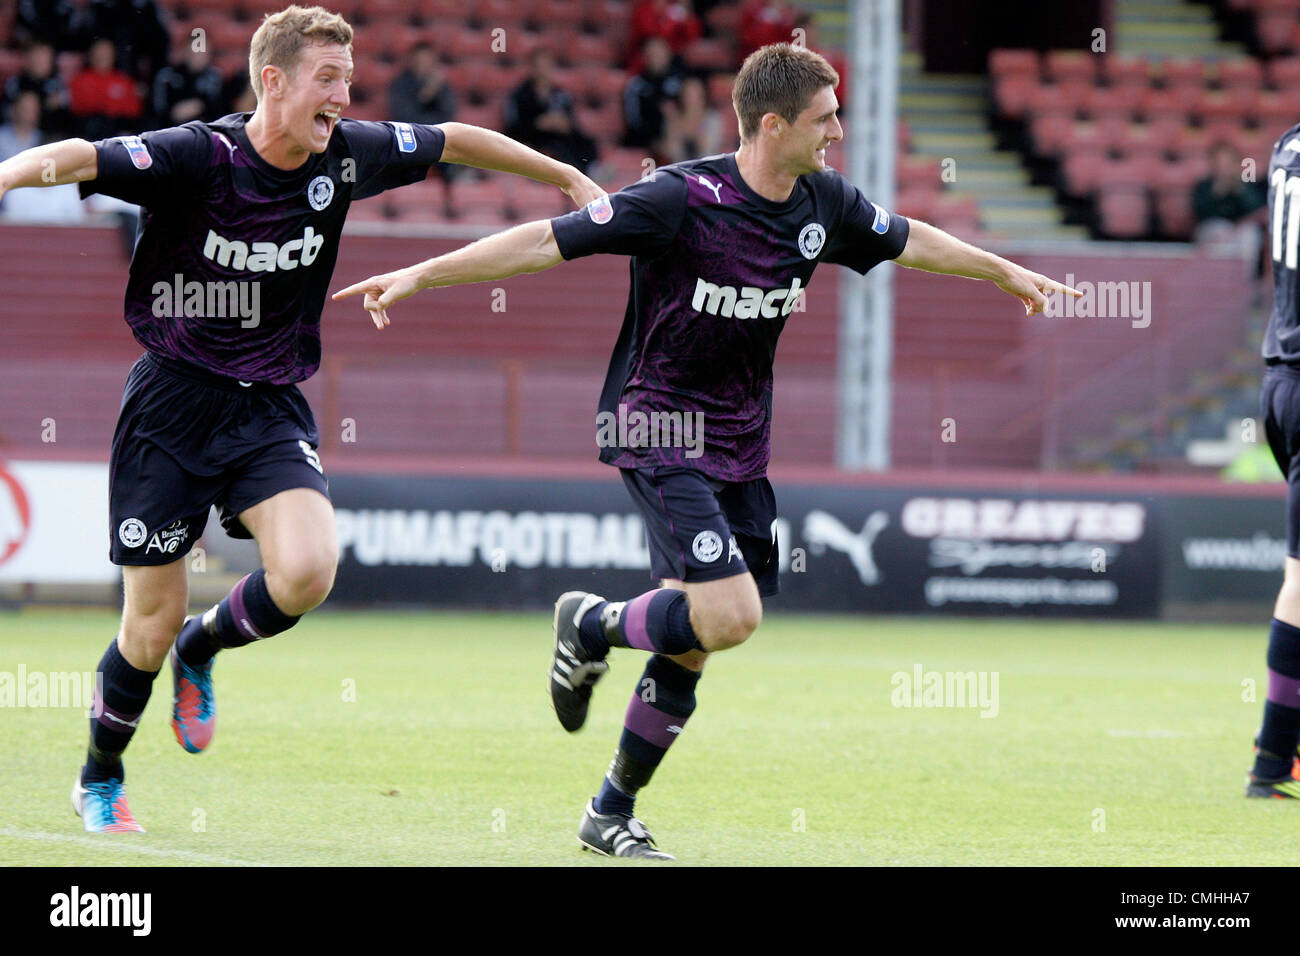 11th Aug 2012. 11.08.2012 Glasgow, Scotland. 9 Kris Doolan celebrates with 5 Aaron Muirhead after the 3rd goal during - Stock Image